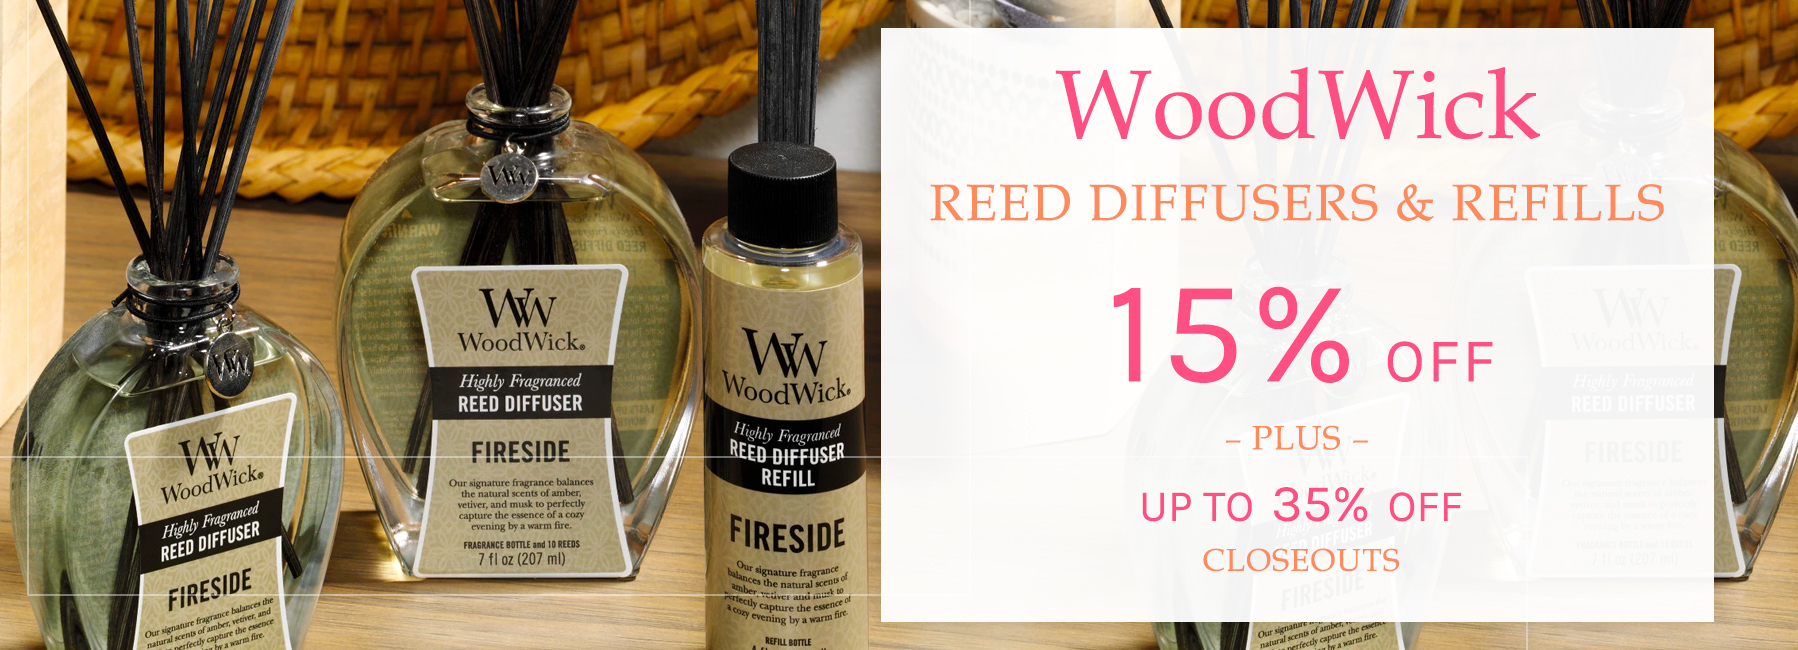 WoodWick - Reed Diffusers - 15 Percent OFF  - Plus Up To 35 Percent OFF Closeouts